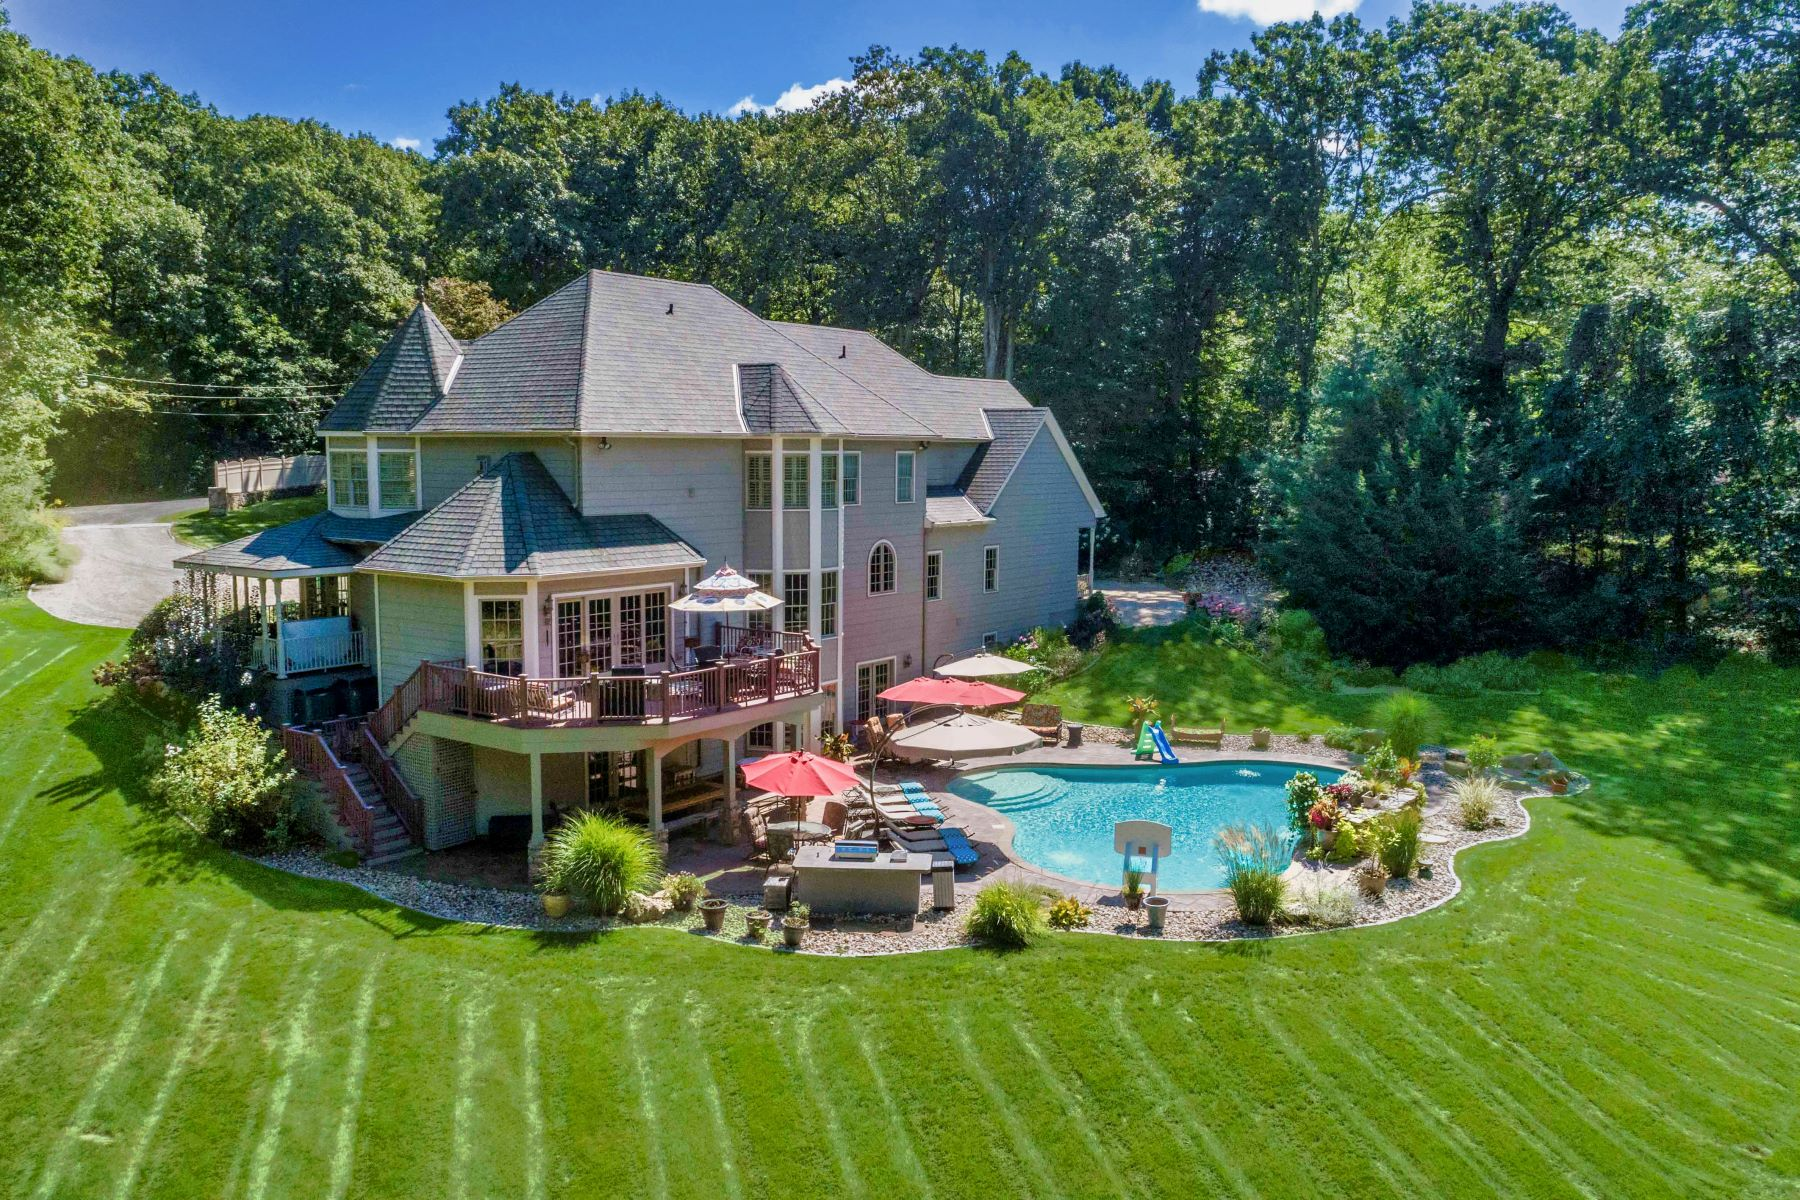 Single Family Homes for Active at Exceptional Private Retreat 283 Saw Pit Hill Road Woodbury, Connecticut 06798 United States